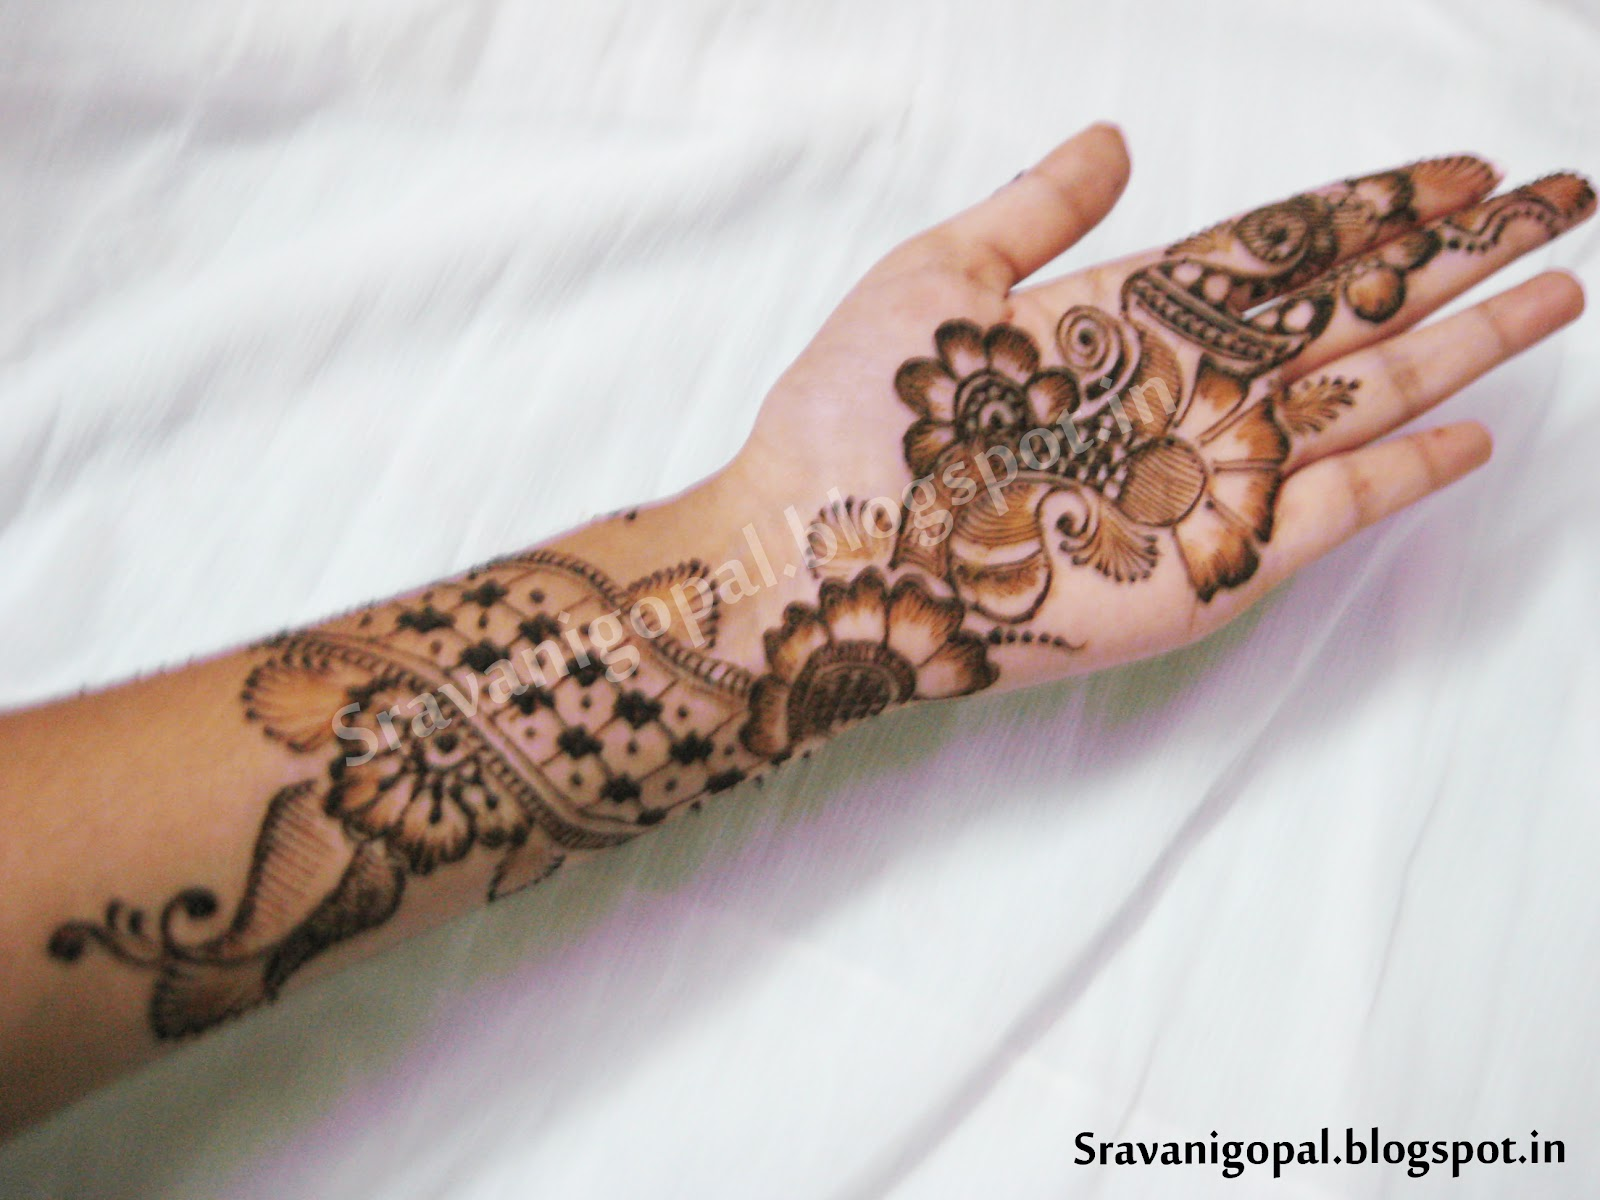 Mehndi Designs And S : Simple mehndi design right hand with popular orange accent